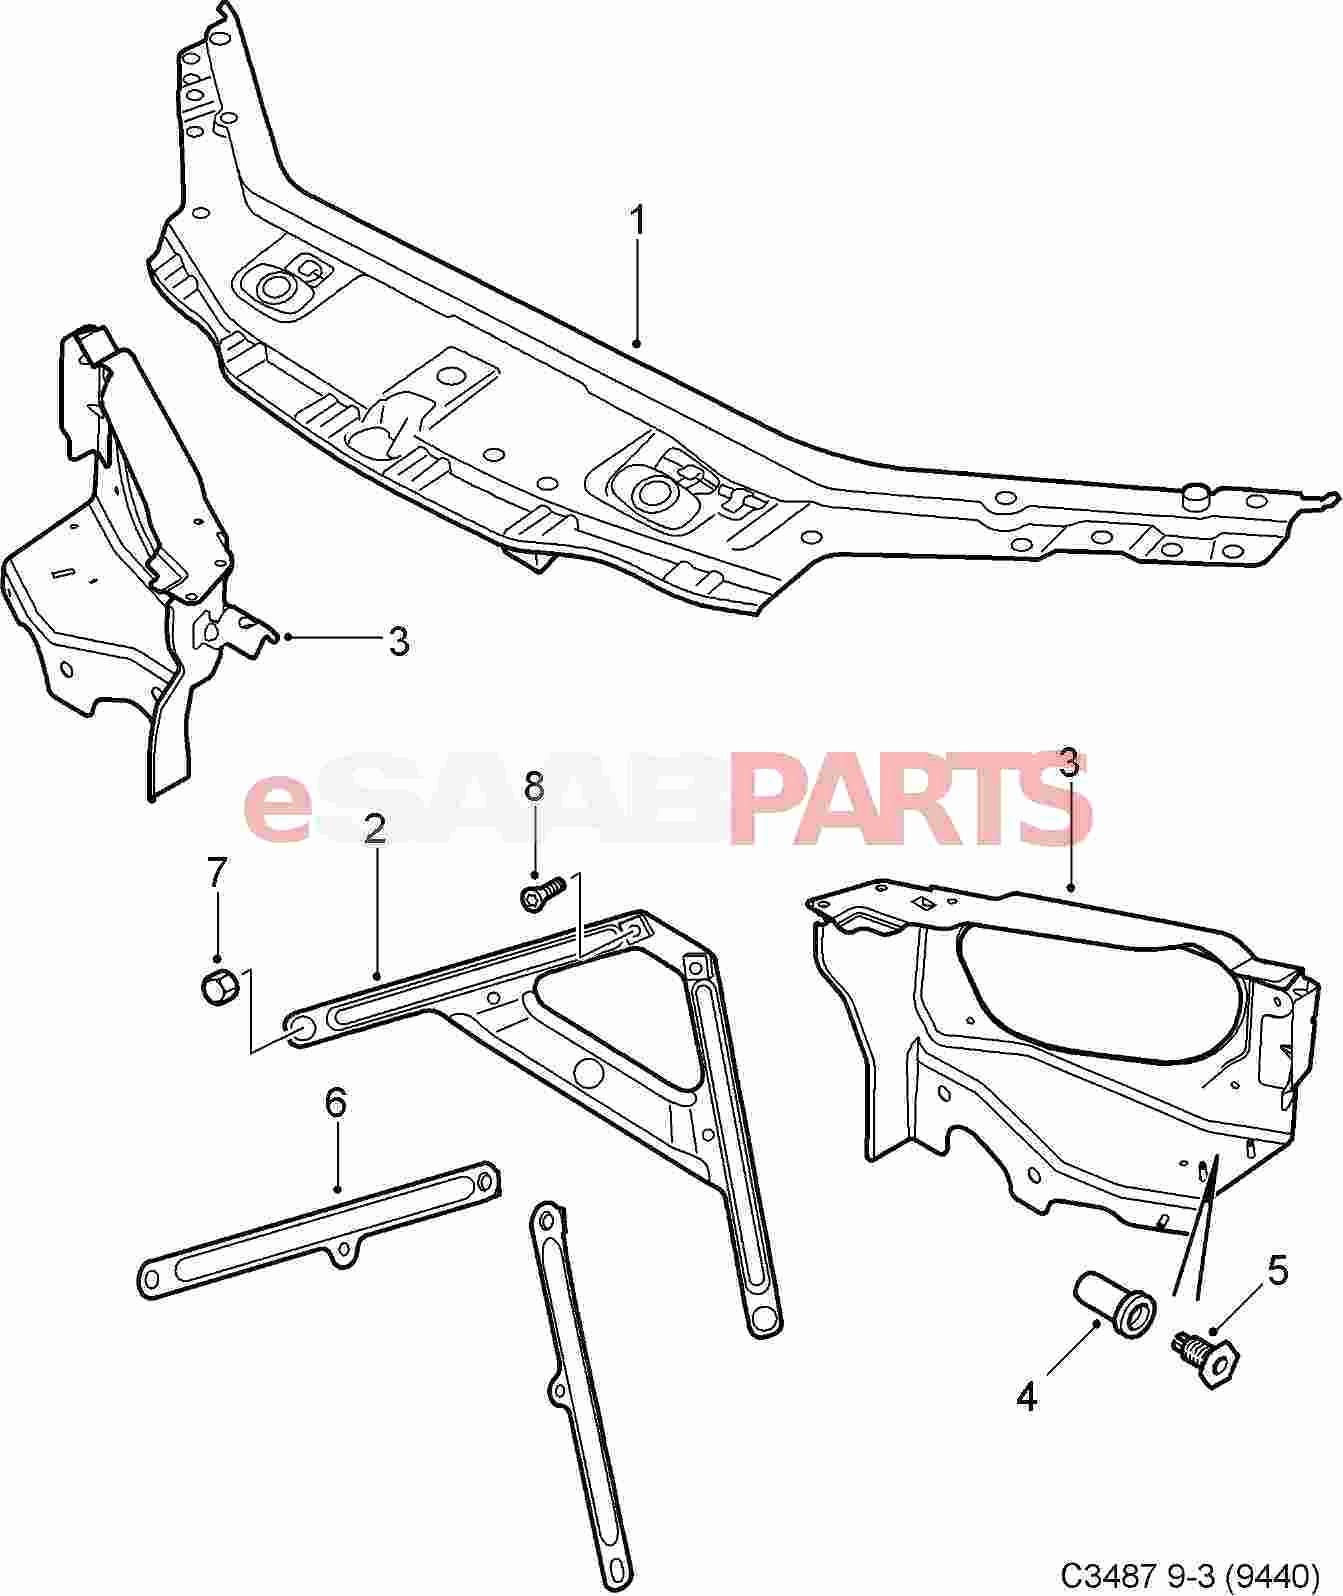 hight resolution of exterior car parts diagram car exterior body parts diagram beautiful parts a manual car of exterior